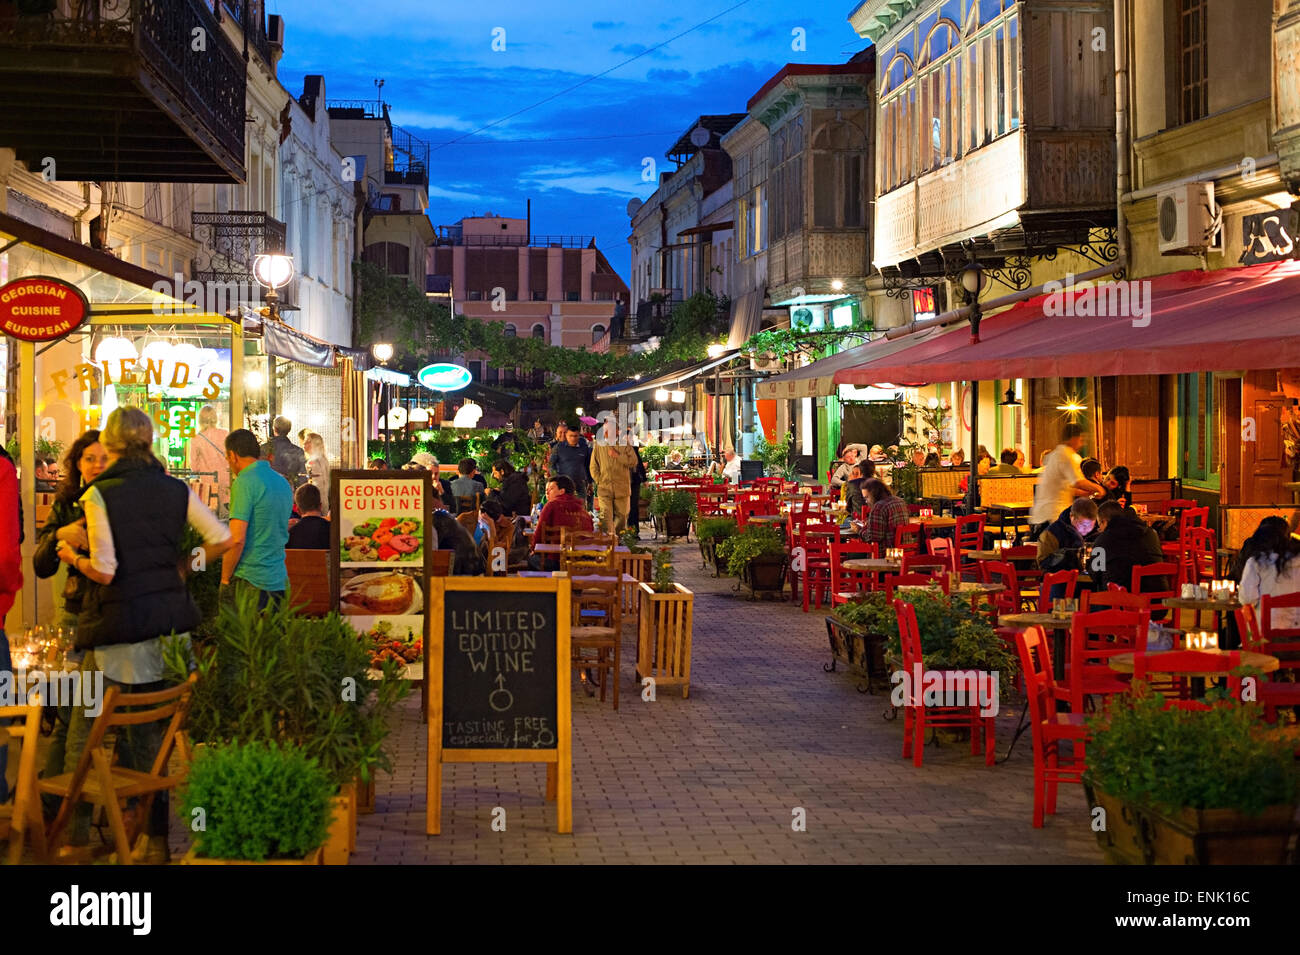 People at restaurant in the Old Town of Tbilisi. Tbiisi is the capital of Georgia and the large - Stock Image